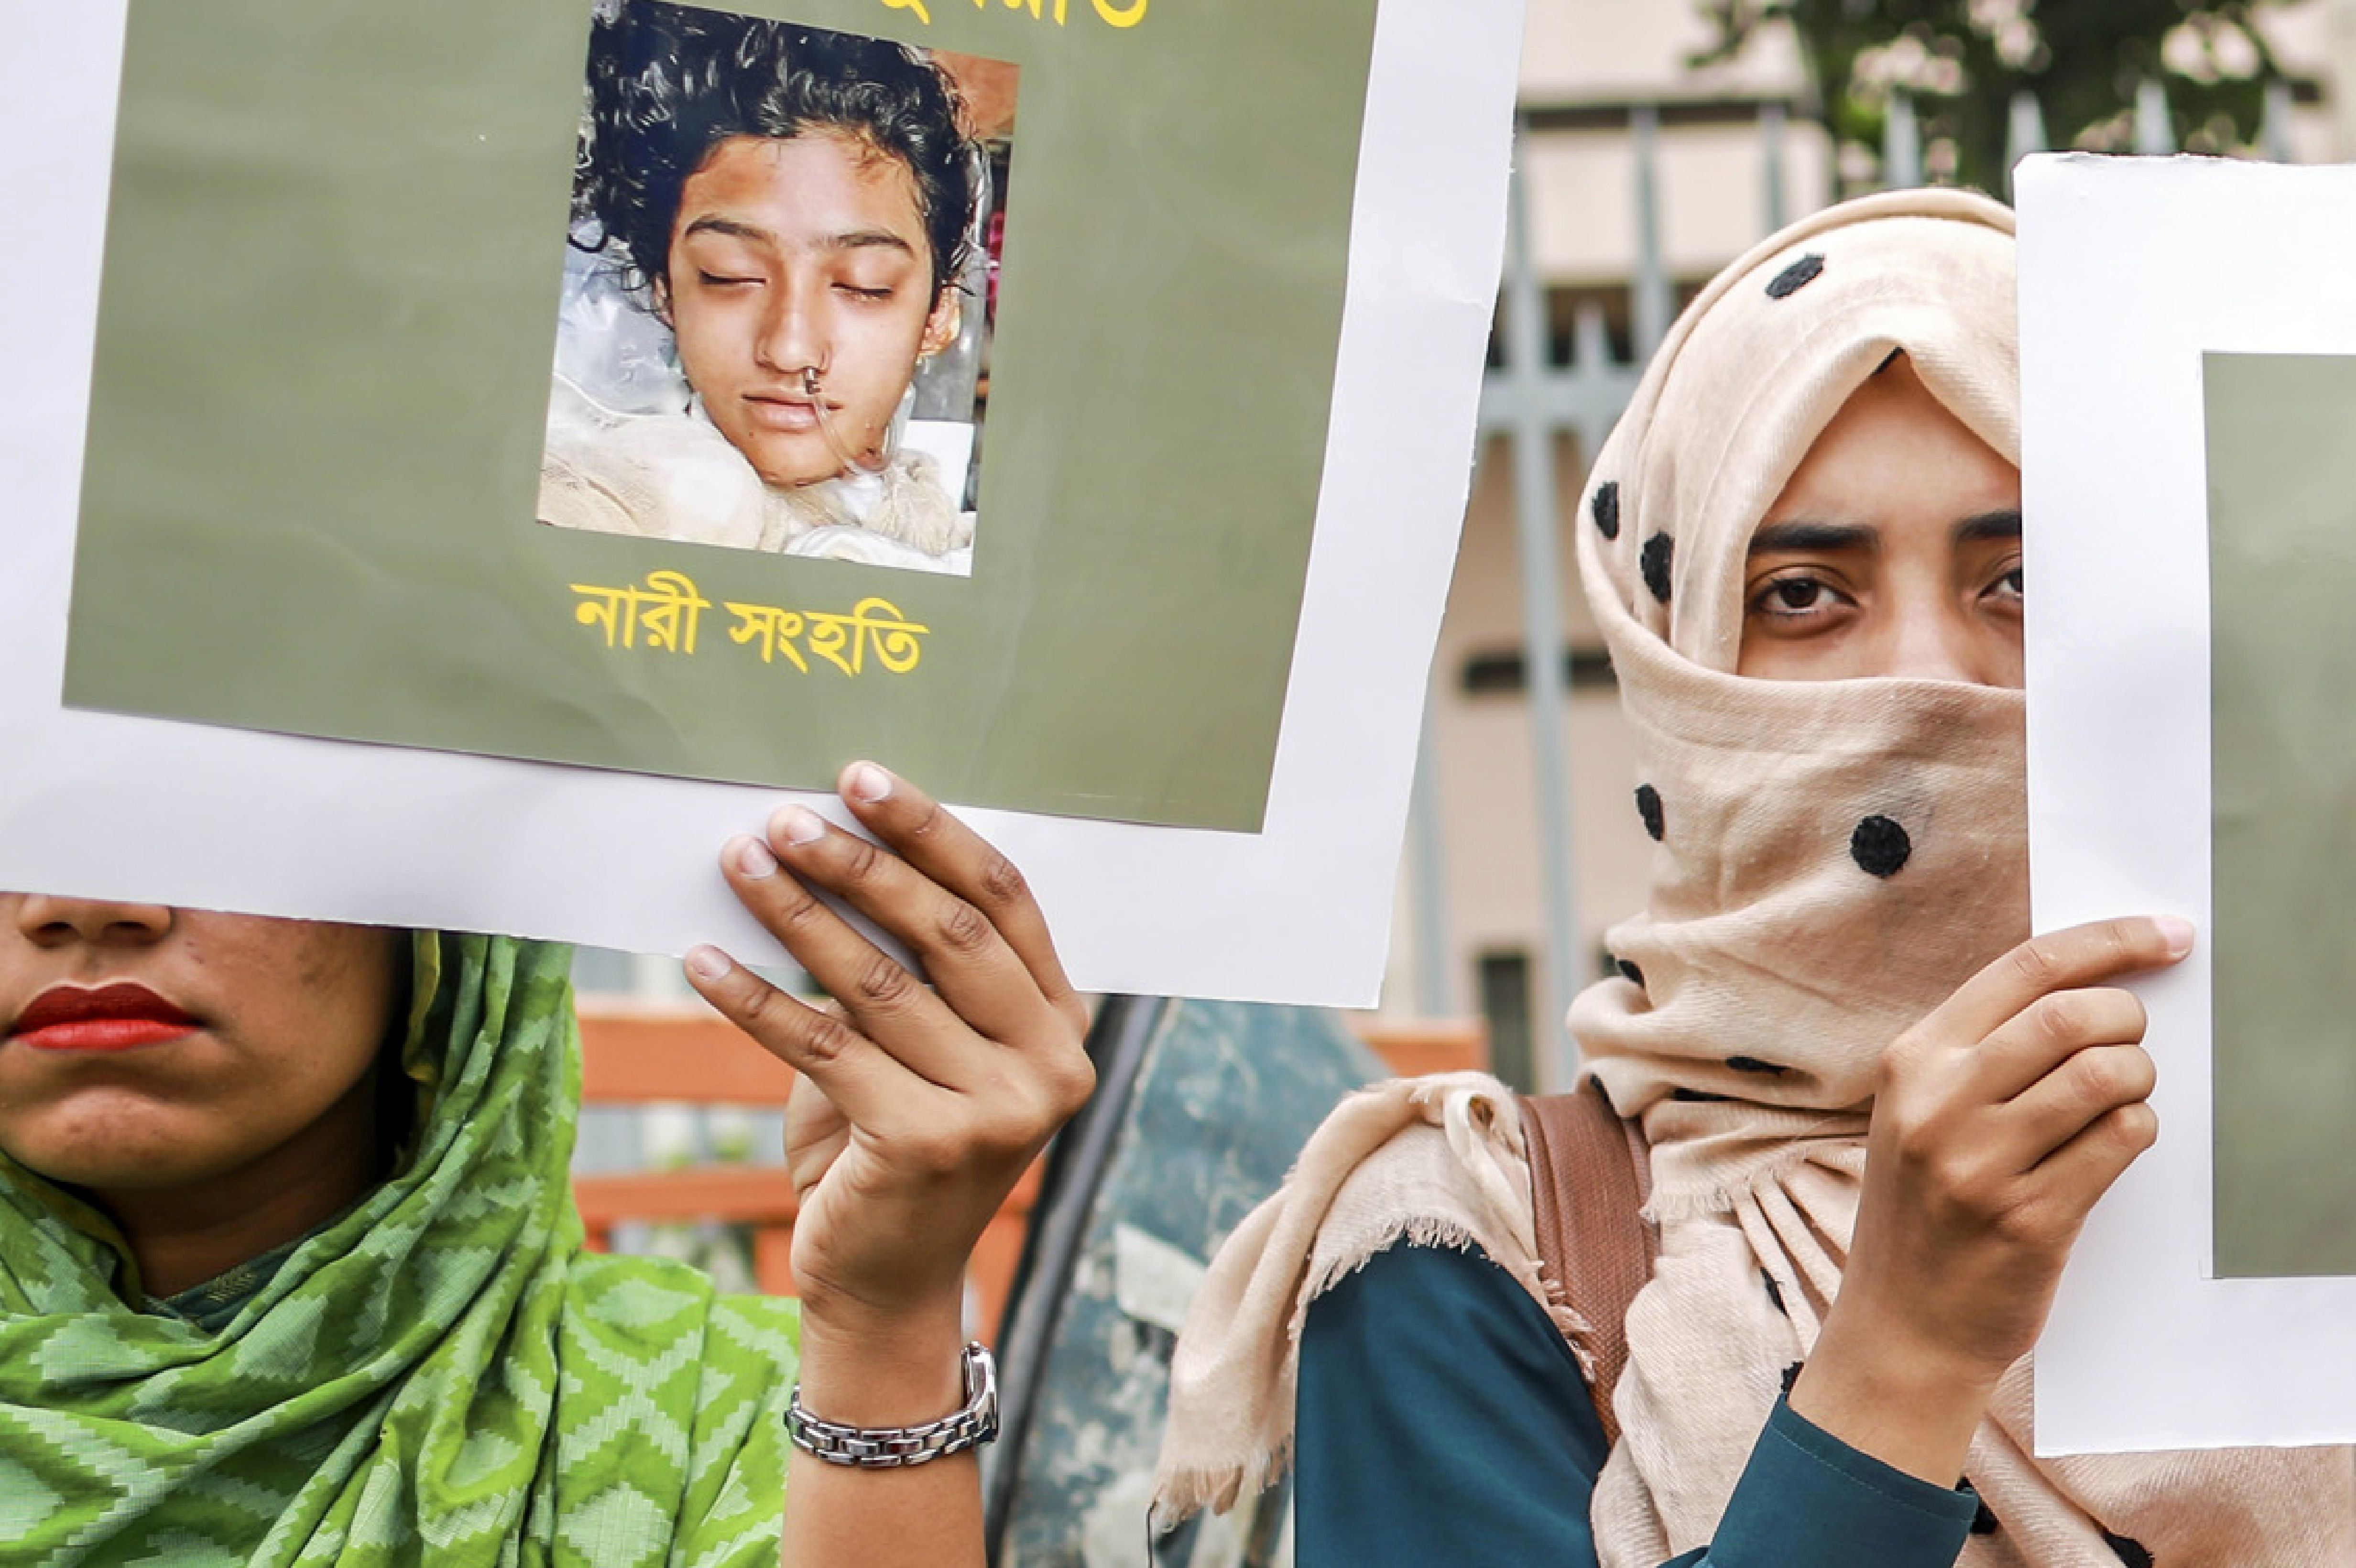 In this photo taken on April 12, 2019 Bangladeshi women hold placards and photographs of schoolgirl Nusrat Jahan Rafi at a pr